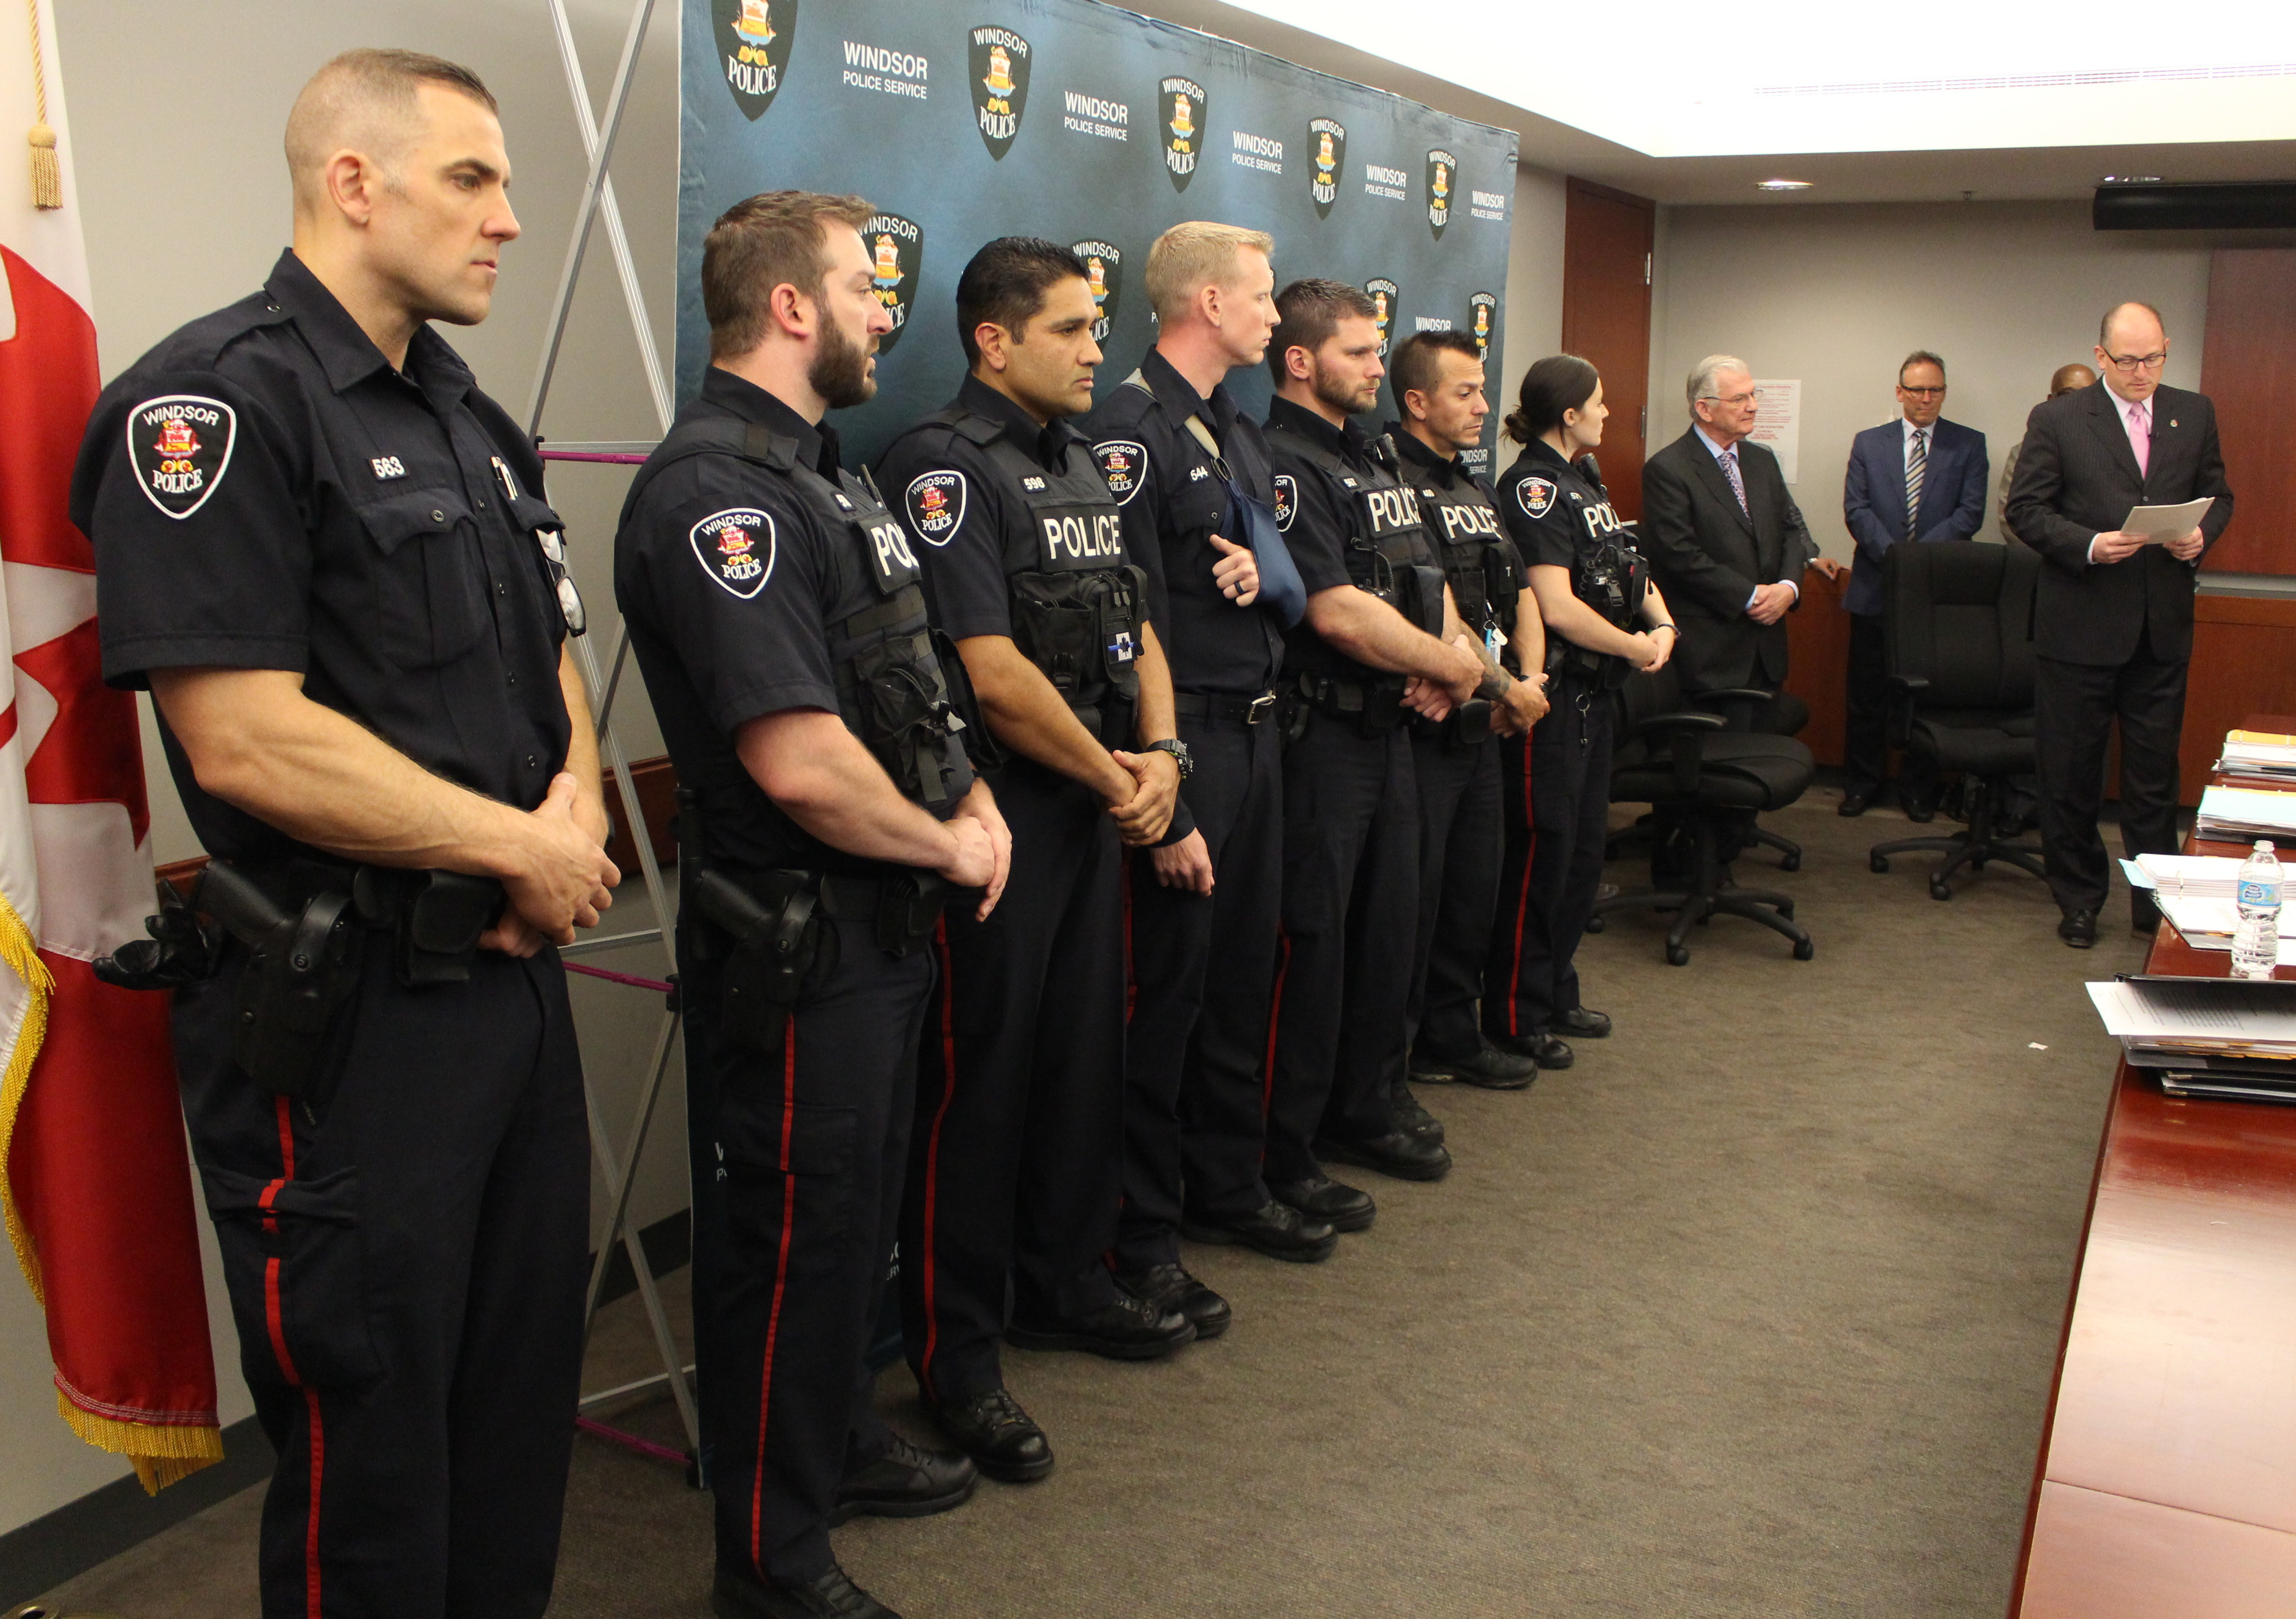 Windsor Mayor Drew Dilkens (far right) publicly recognizes seven Windsor police officers at a Windsor Police Board meeting, June 2, 2015. (Photo by Mike Vlasveld)